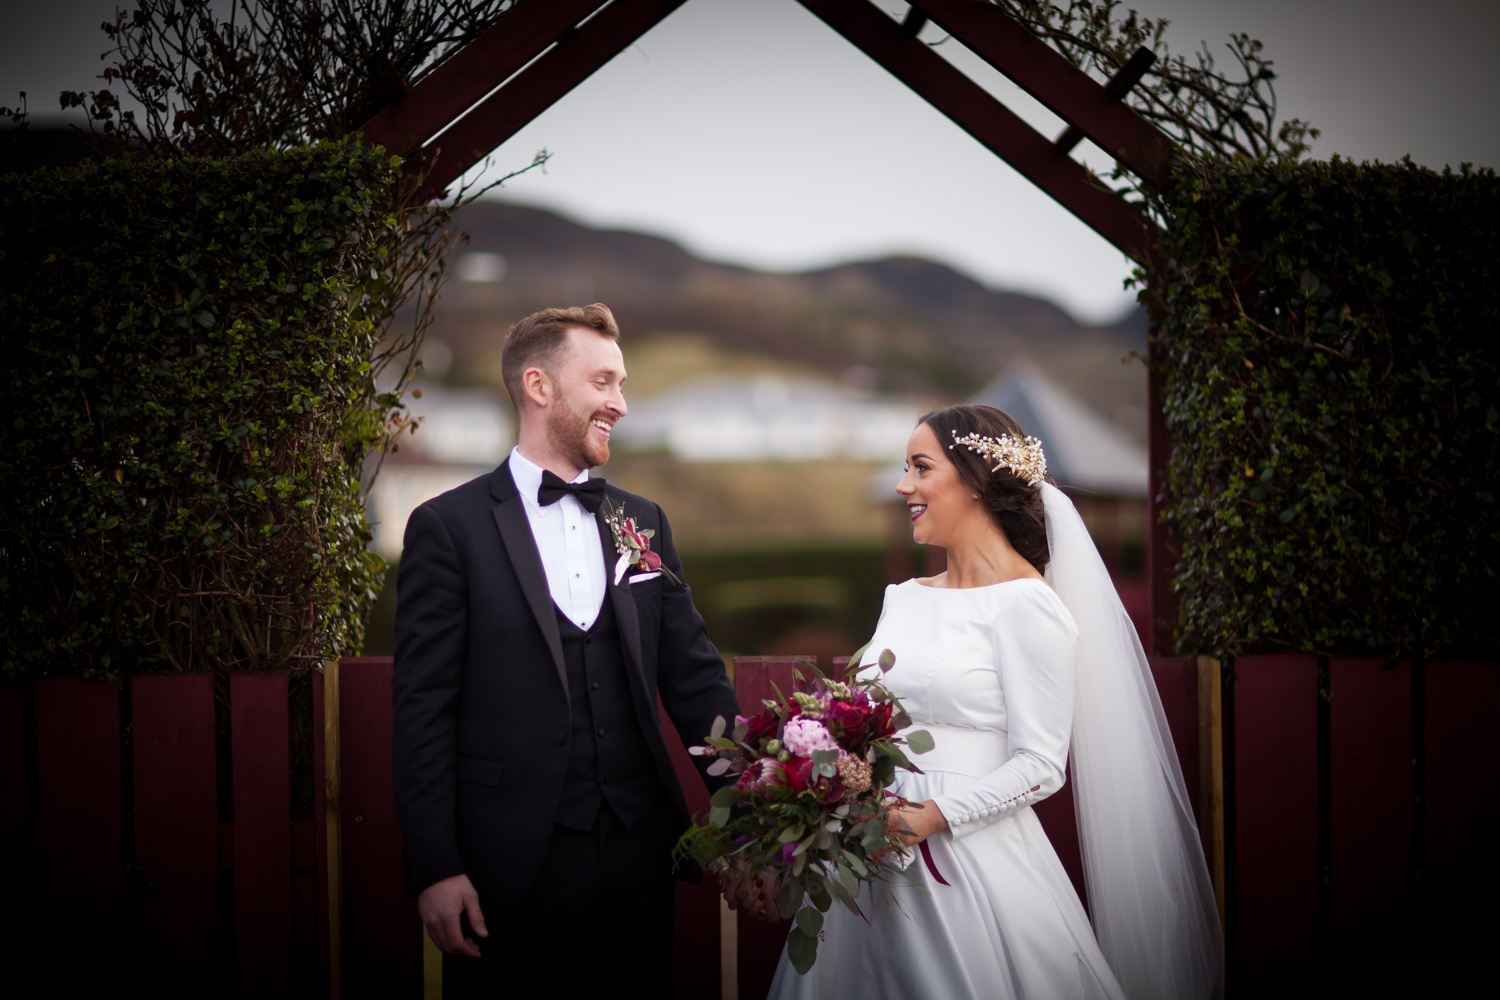 Mark_Barnes_Northern_Ireland_wedding_photographer_Innishowen_Gateway_Donegal_Wedding_photography_Donegal_wedding_photographer-49.jpg